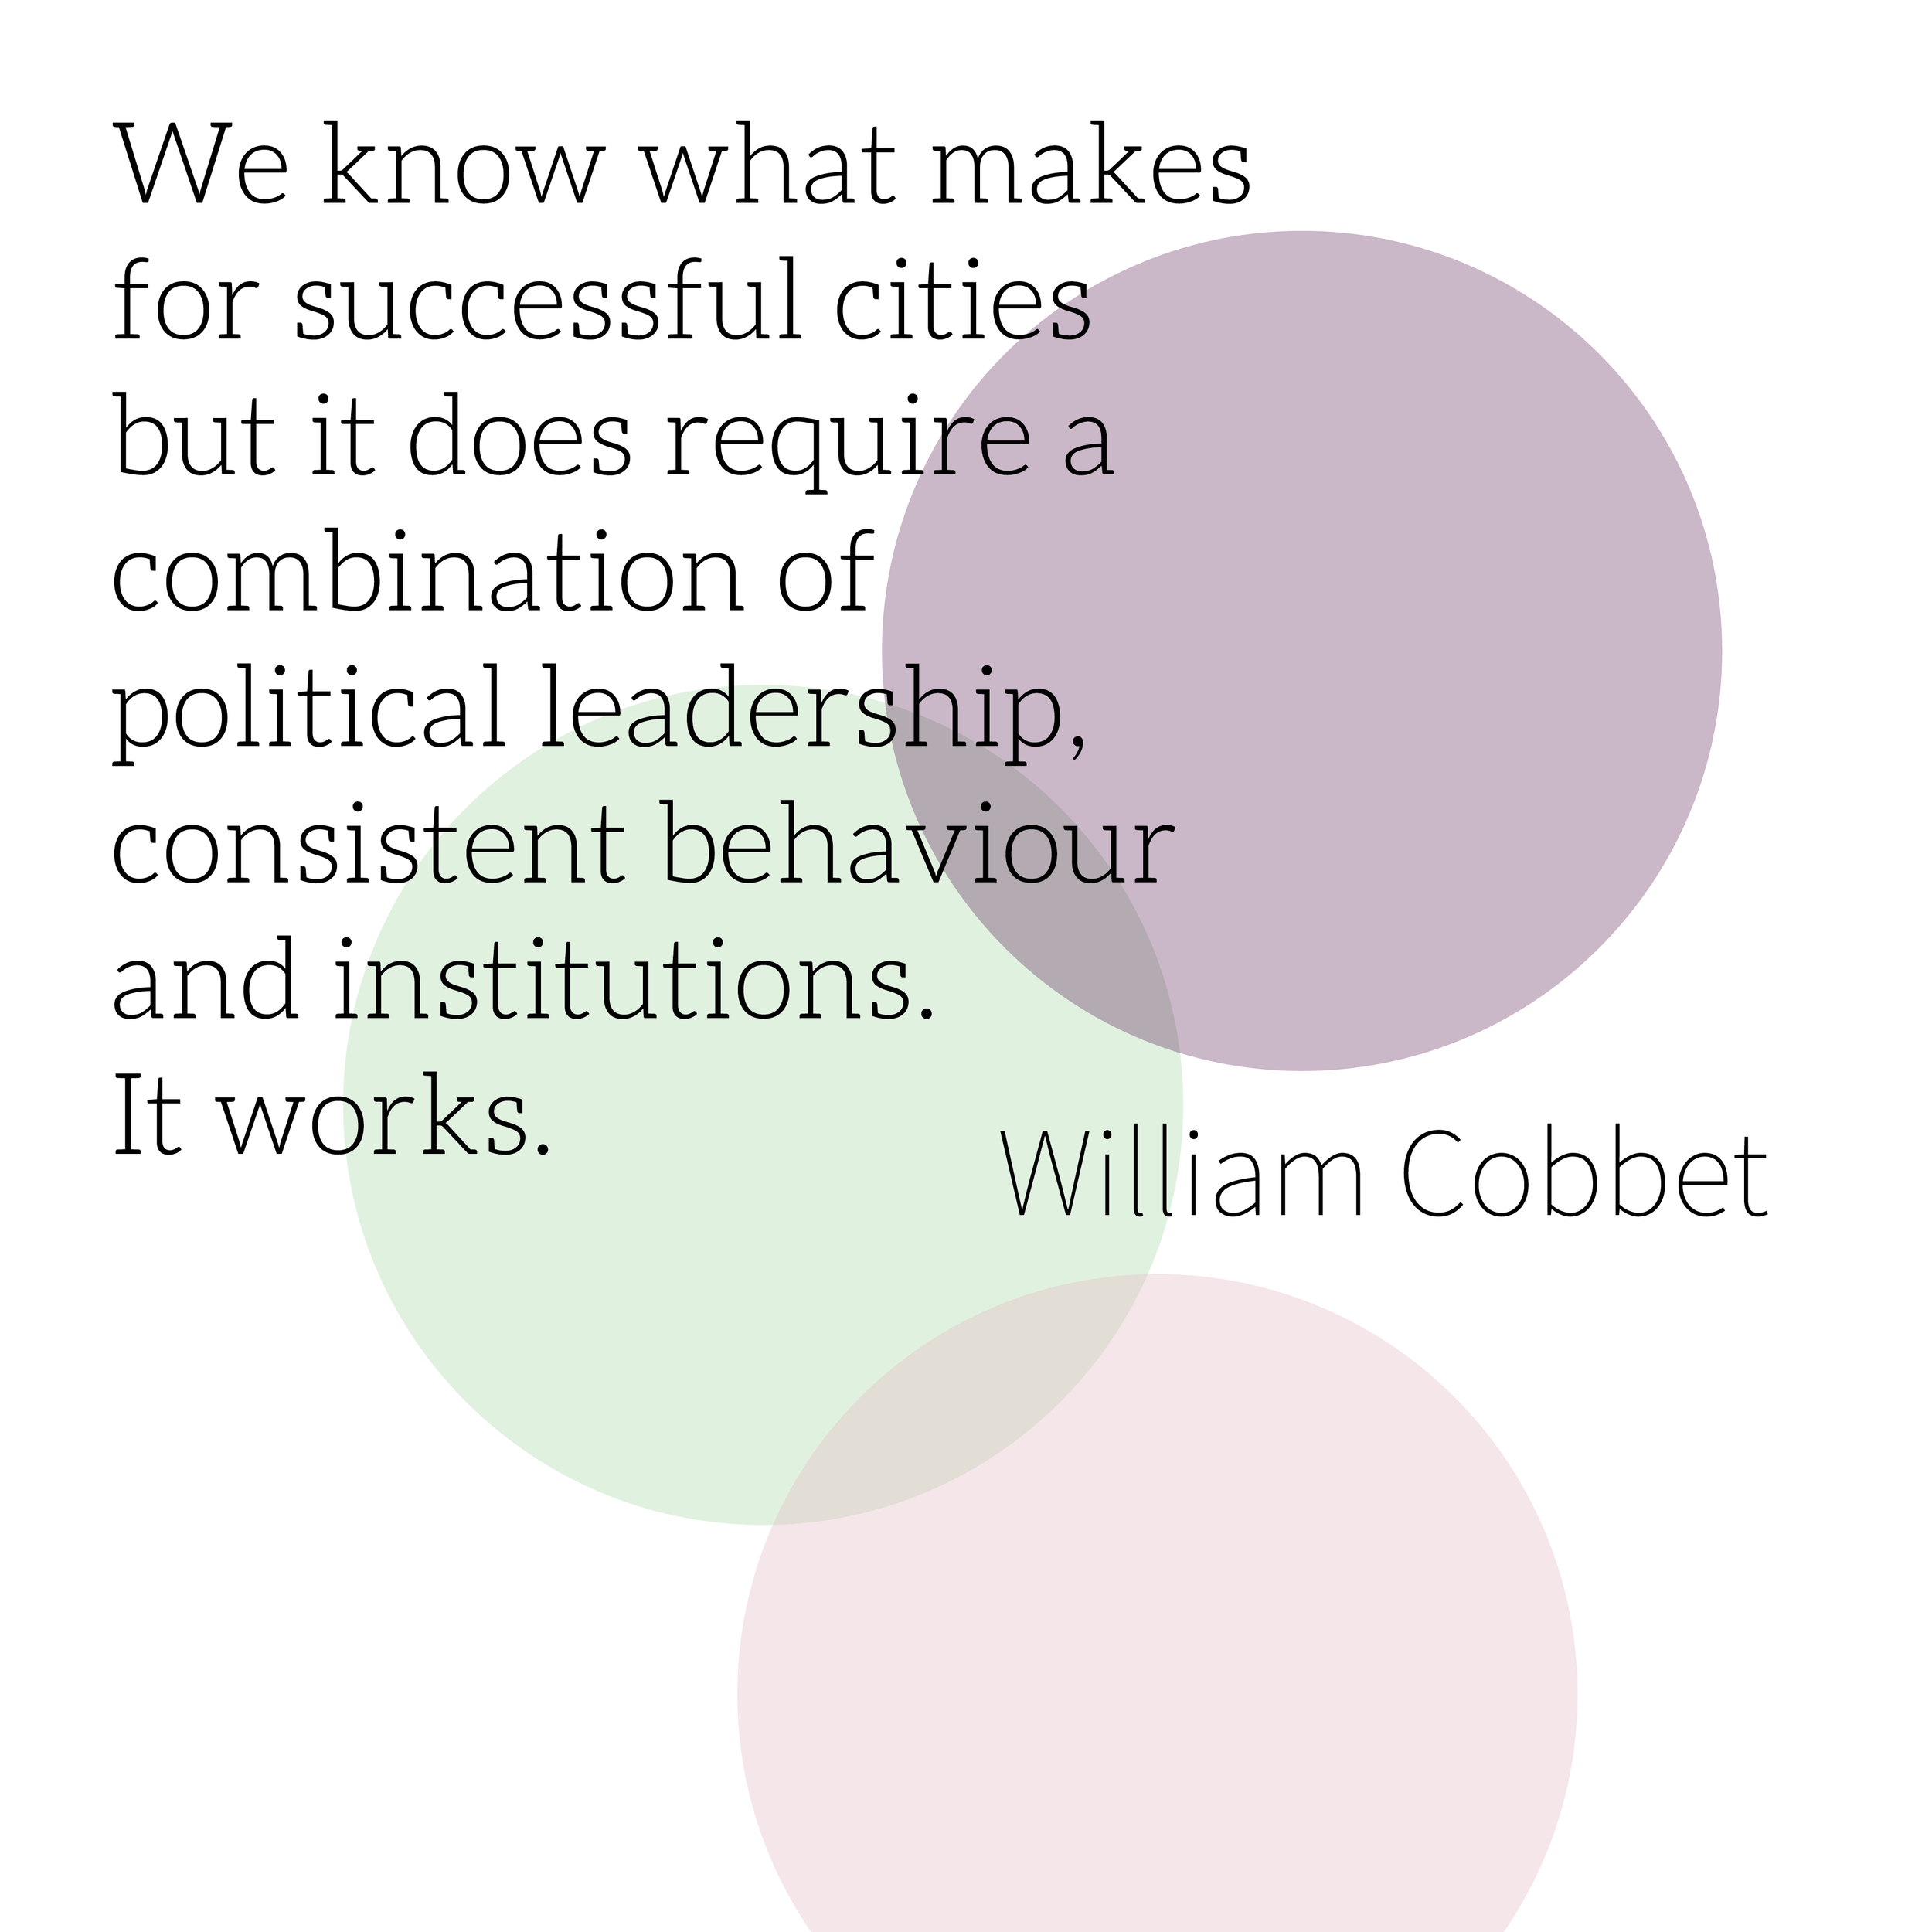 2019.06.01 William Cobbet.png